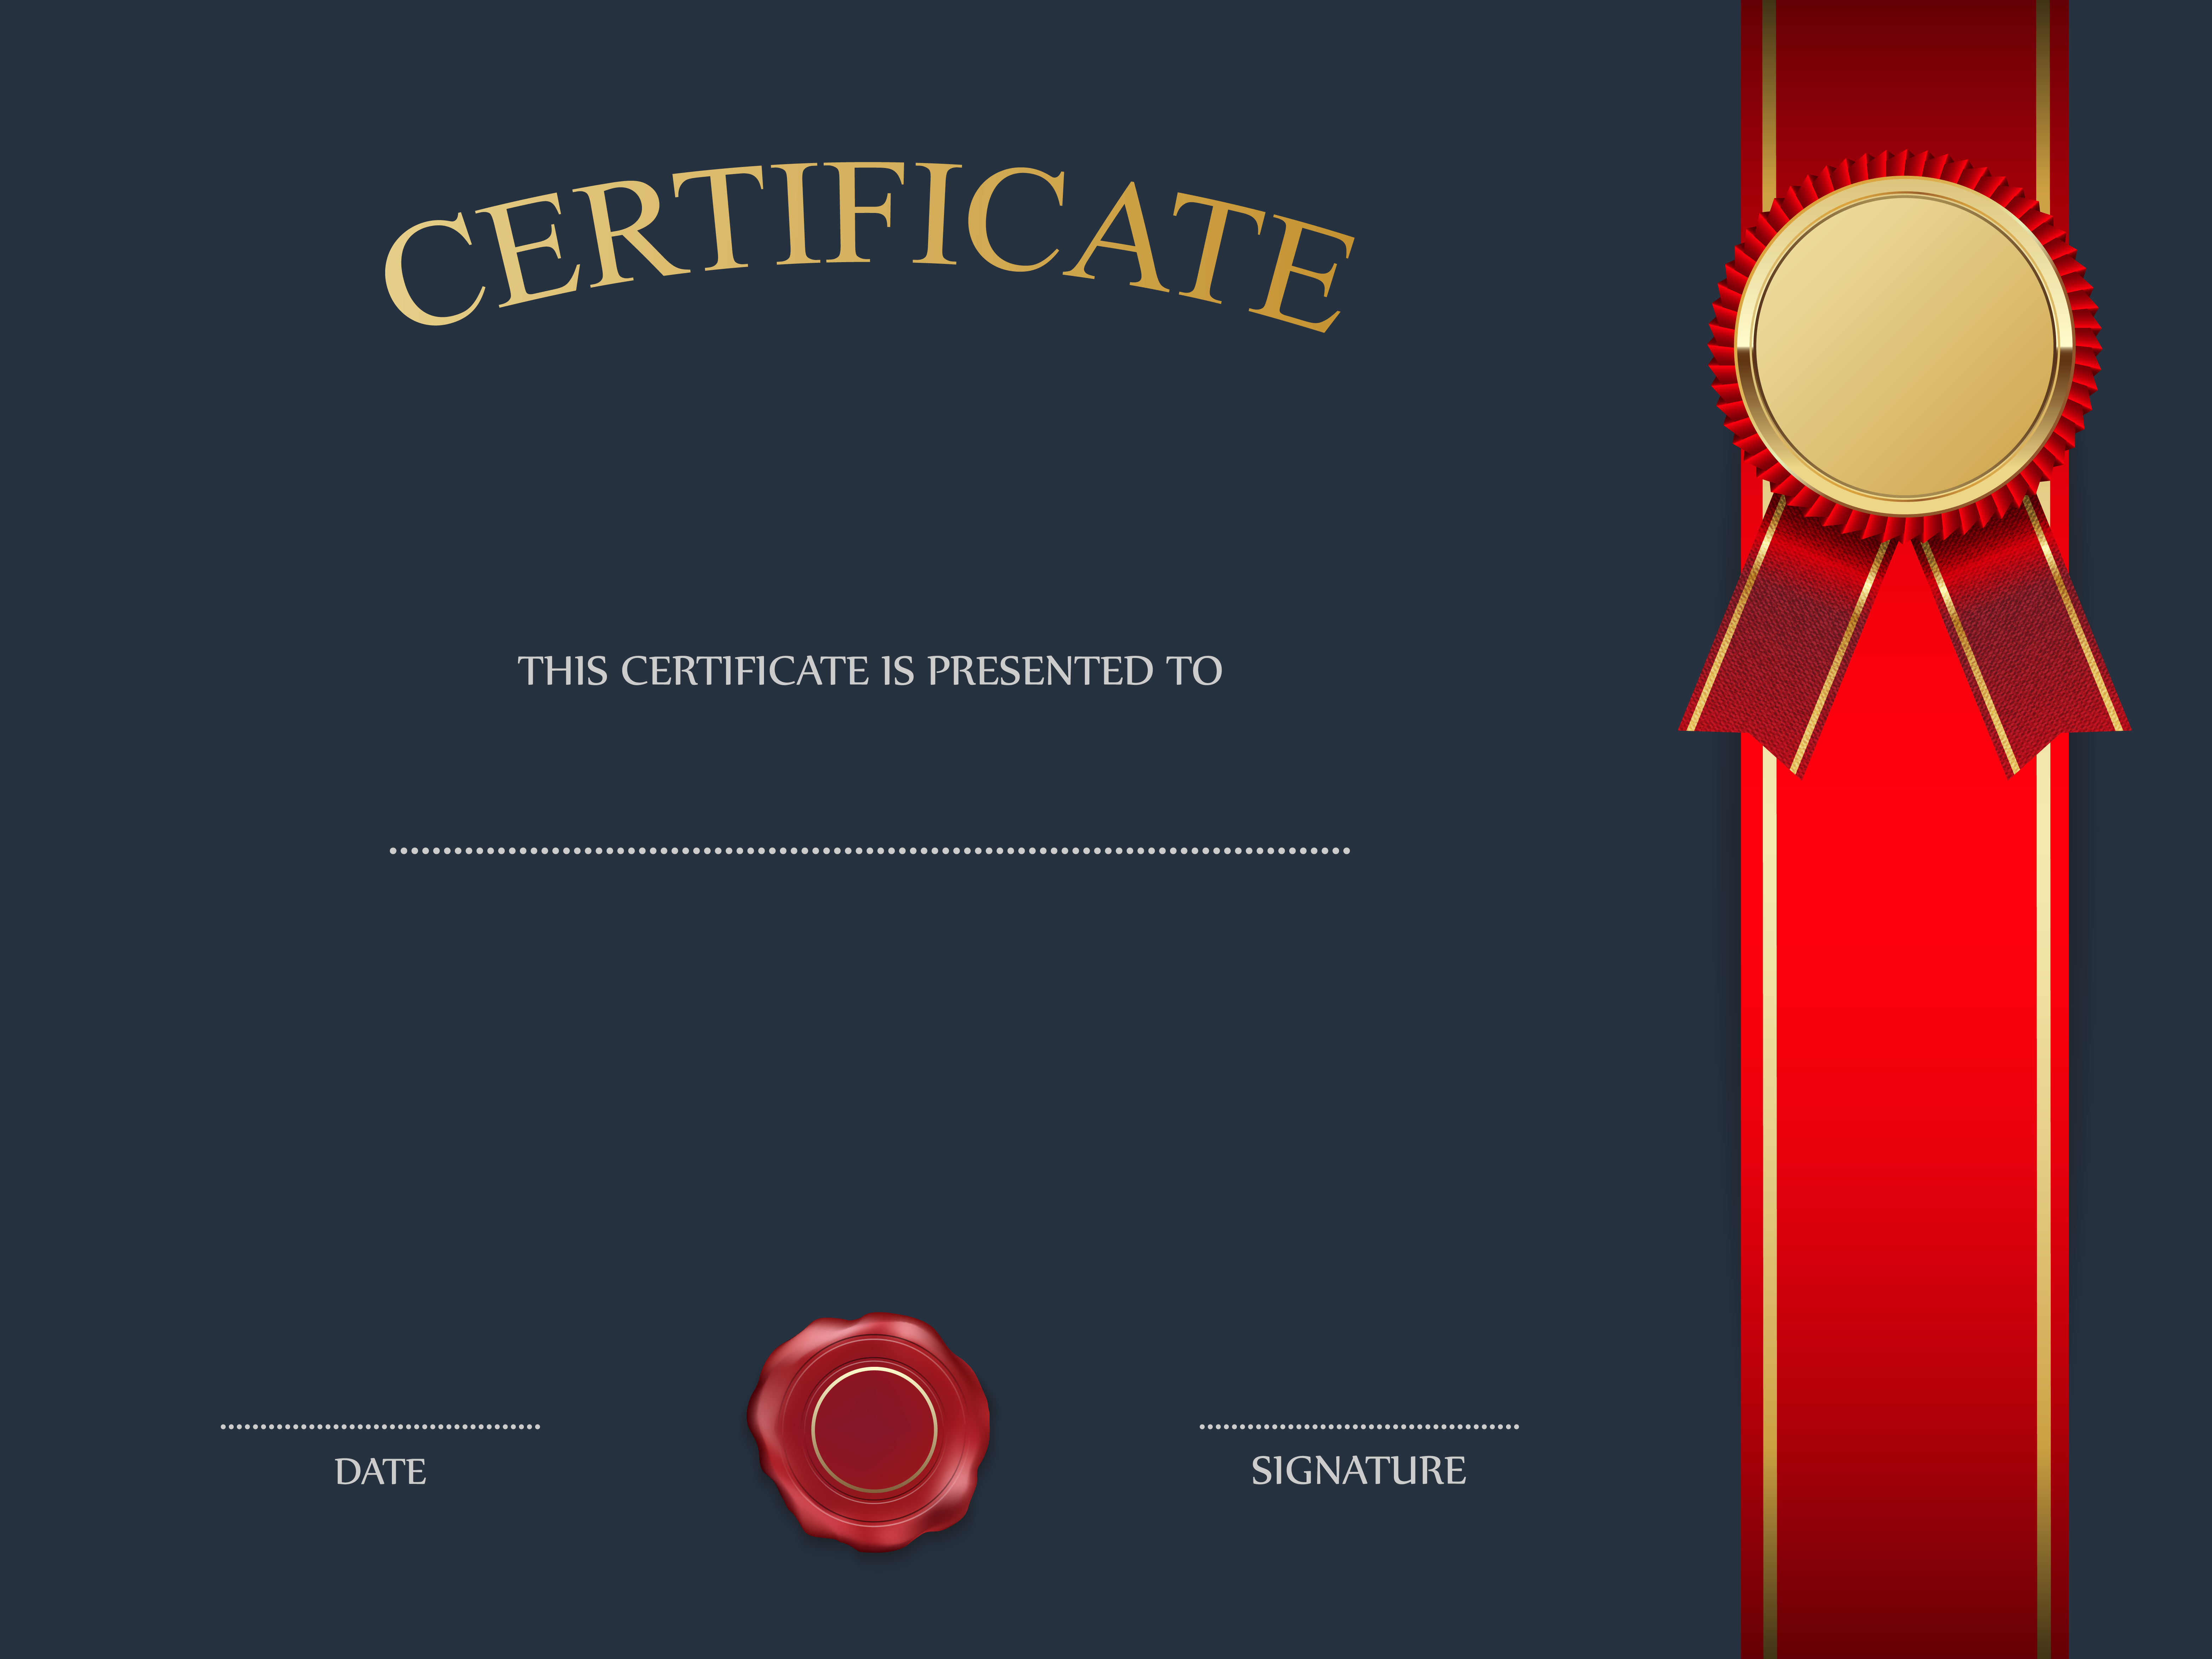 Blue certificate template png image gallery yopriceville high blue certificate template png image gallery yopriceville high quality images and transparent png free clipart yadclub Gallery